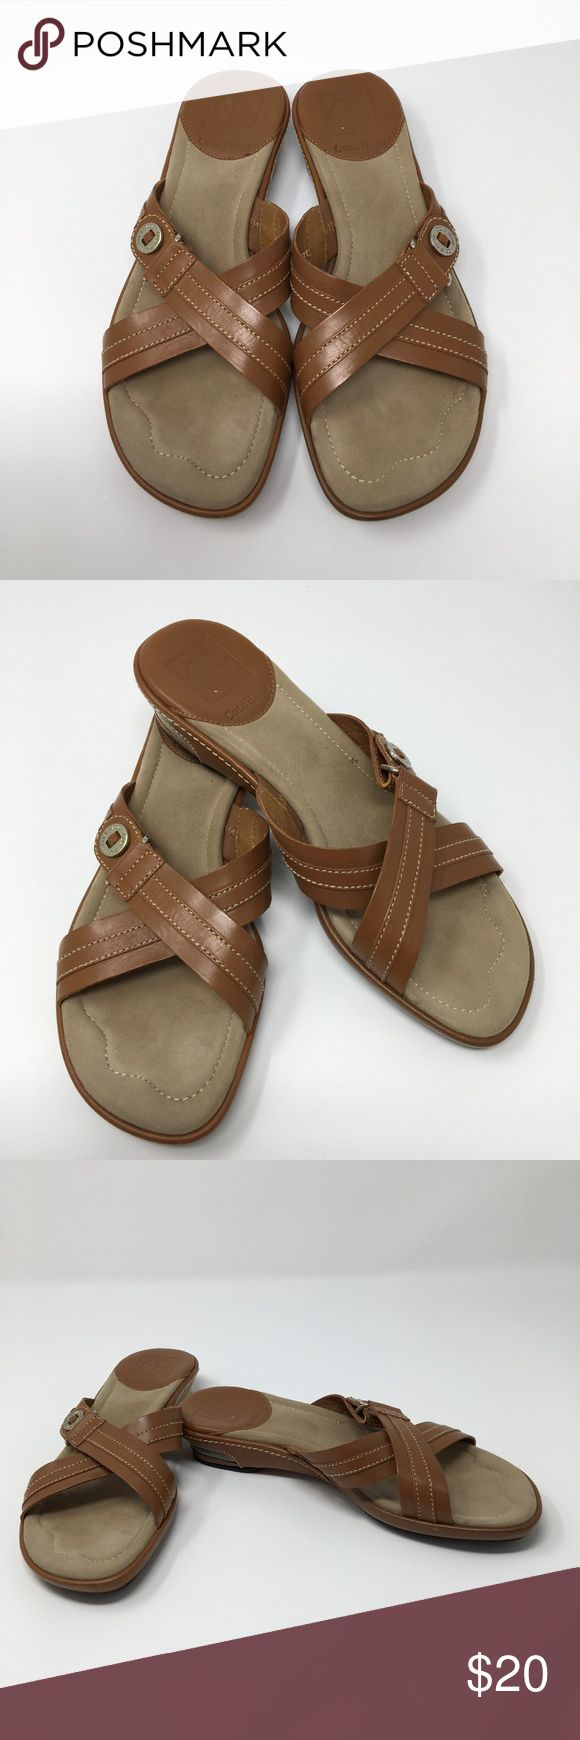 Cole Haan slip on sandals NIKE Air Cushion 5.5 You are viewing an awesome pair of Cole Haan Nike Air sandals The size is 5.5 The color is brown  The material is leather Low heel  Slip on slide Criss cross pattern across the top of the foot Cole Haan Shoes Sandals